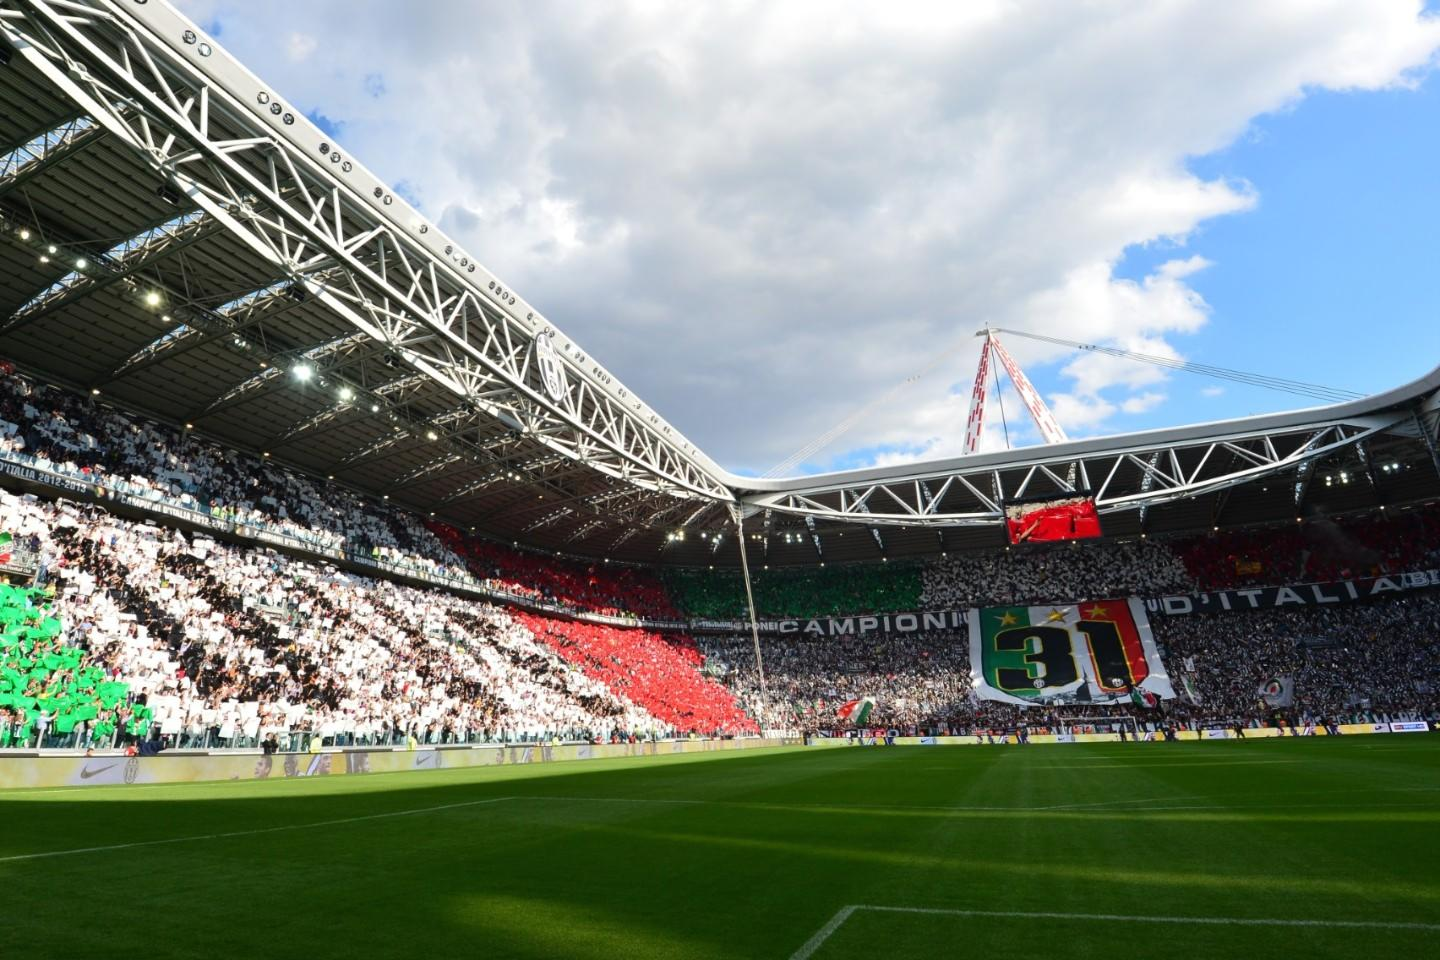 Juventus FC Tickets | Buy or Sell Tickets for Juventus FC